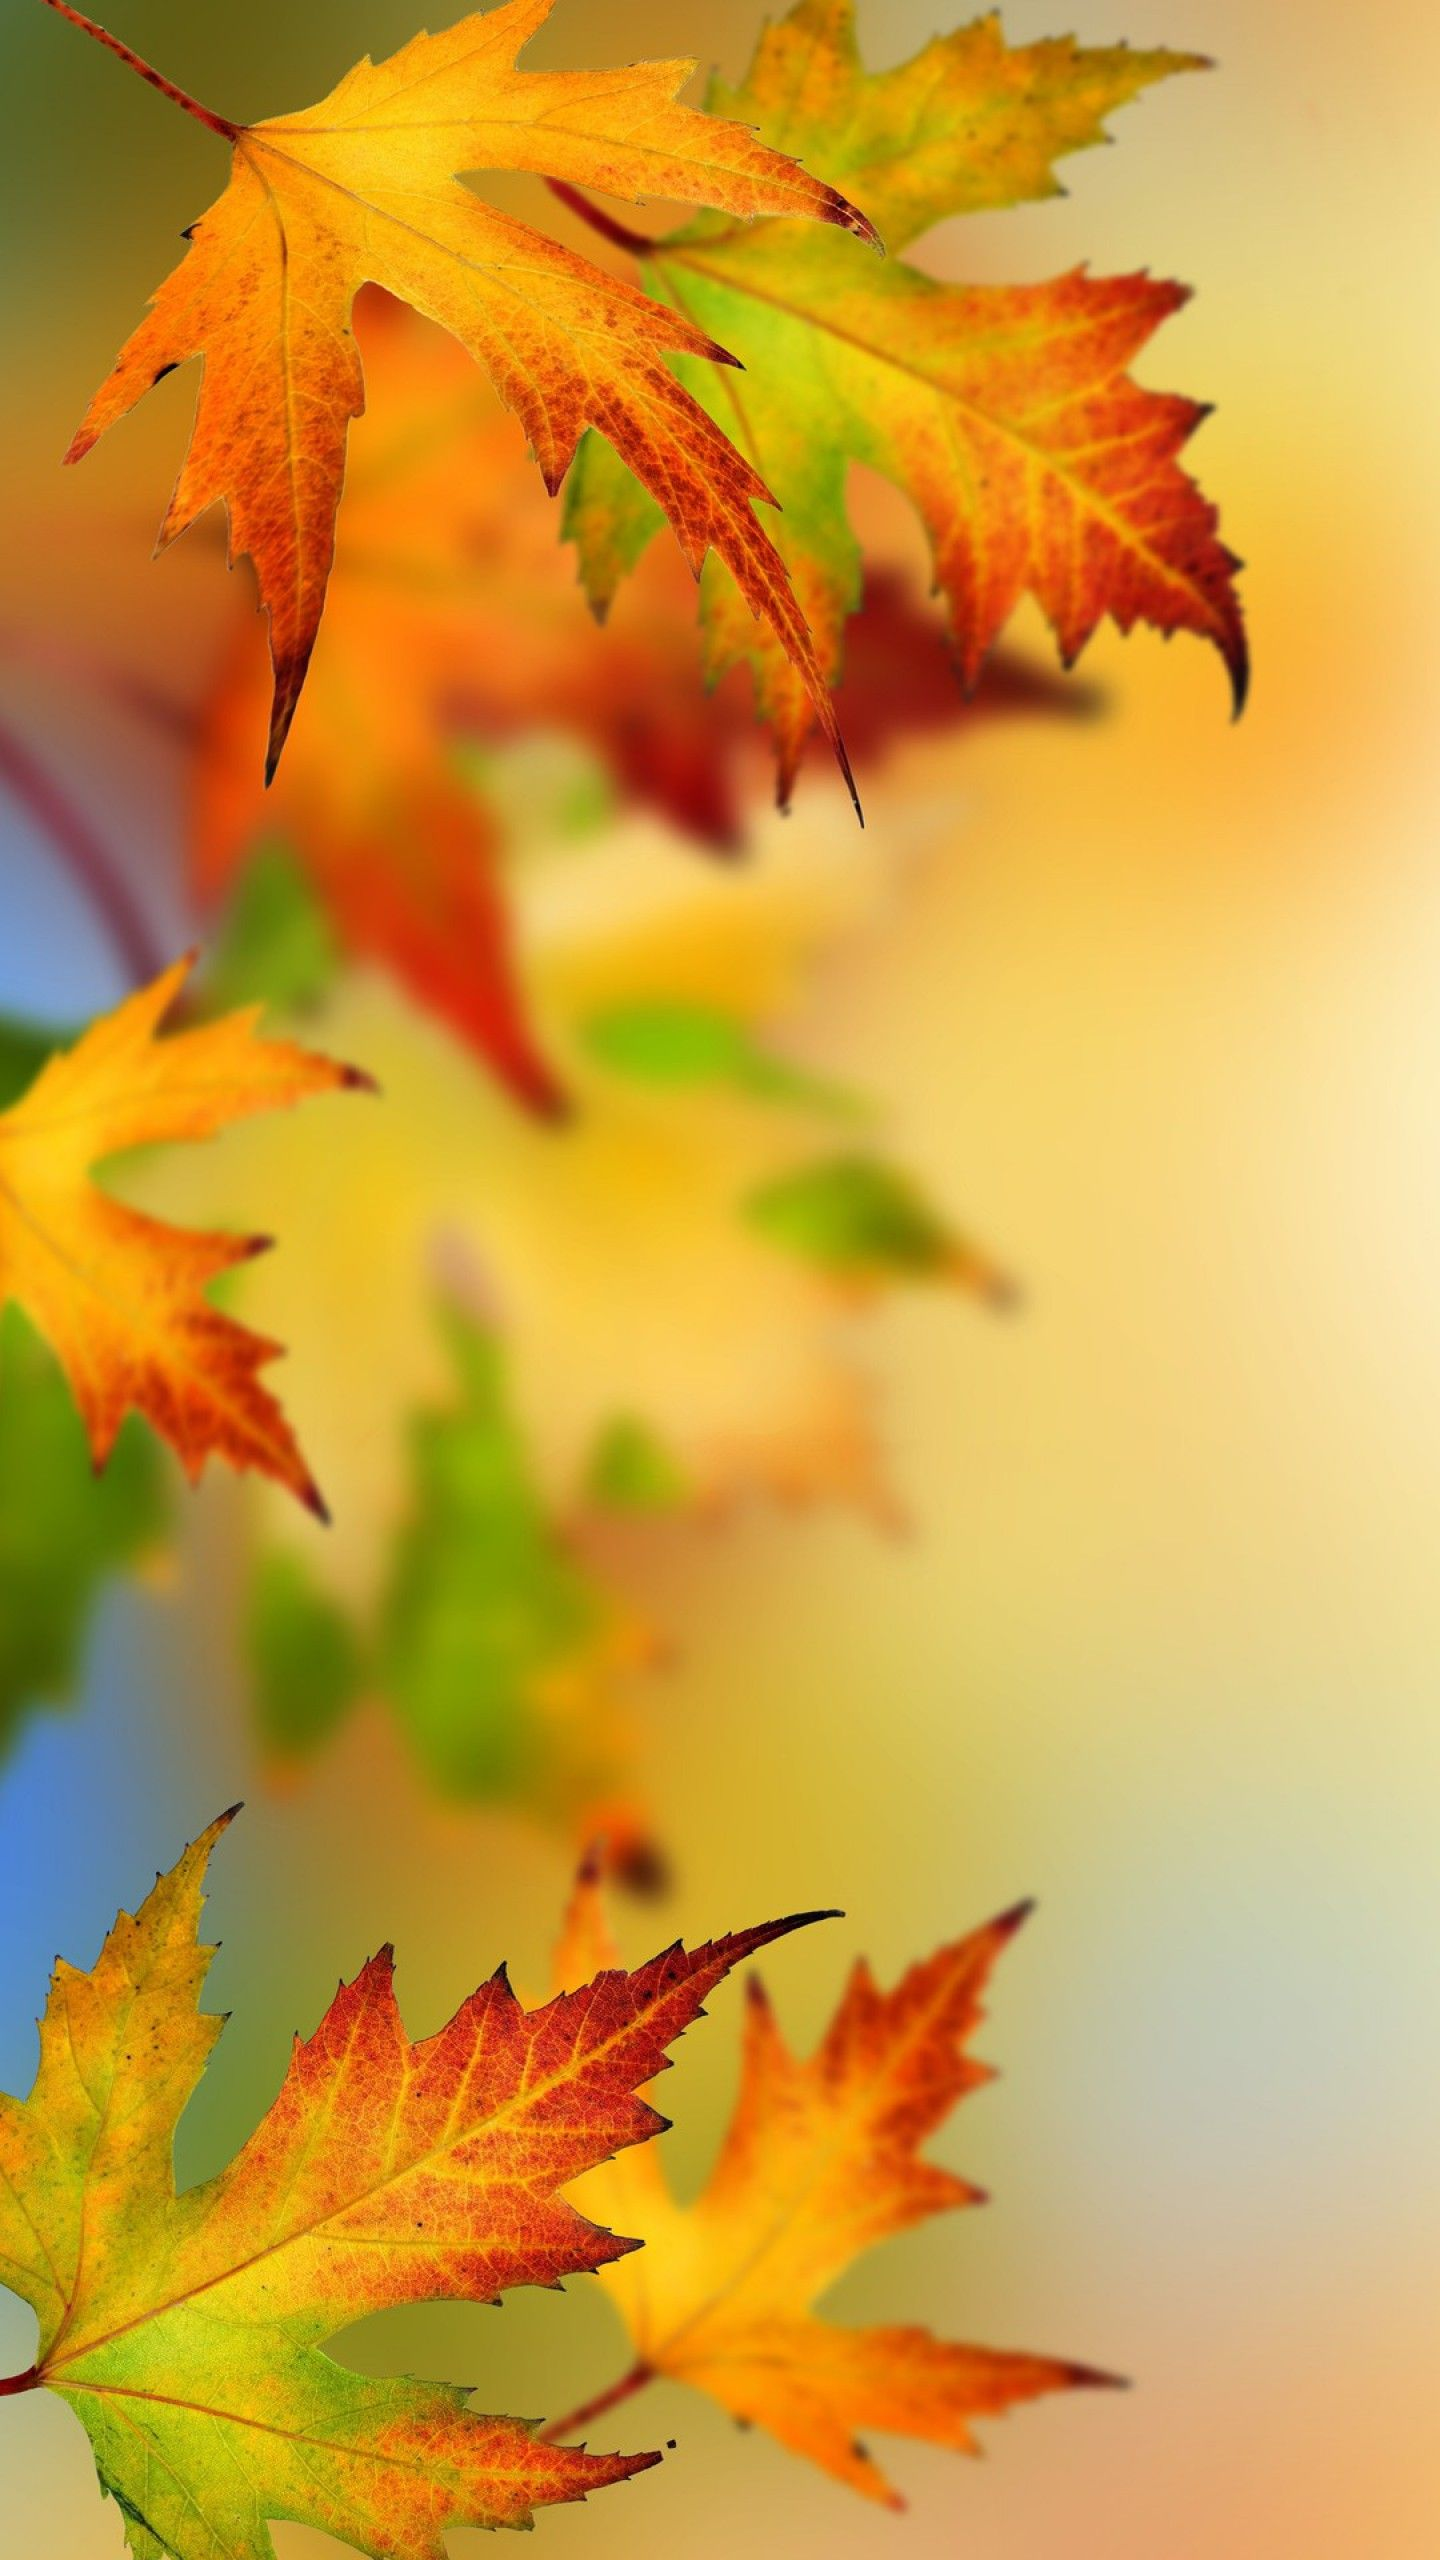 Samsung Galaxy S7 and S7 Edge Alternative Wallpapers - autumn ...